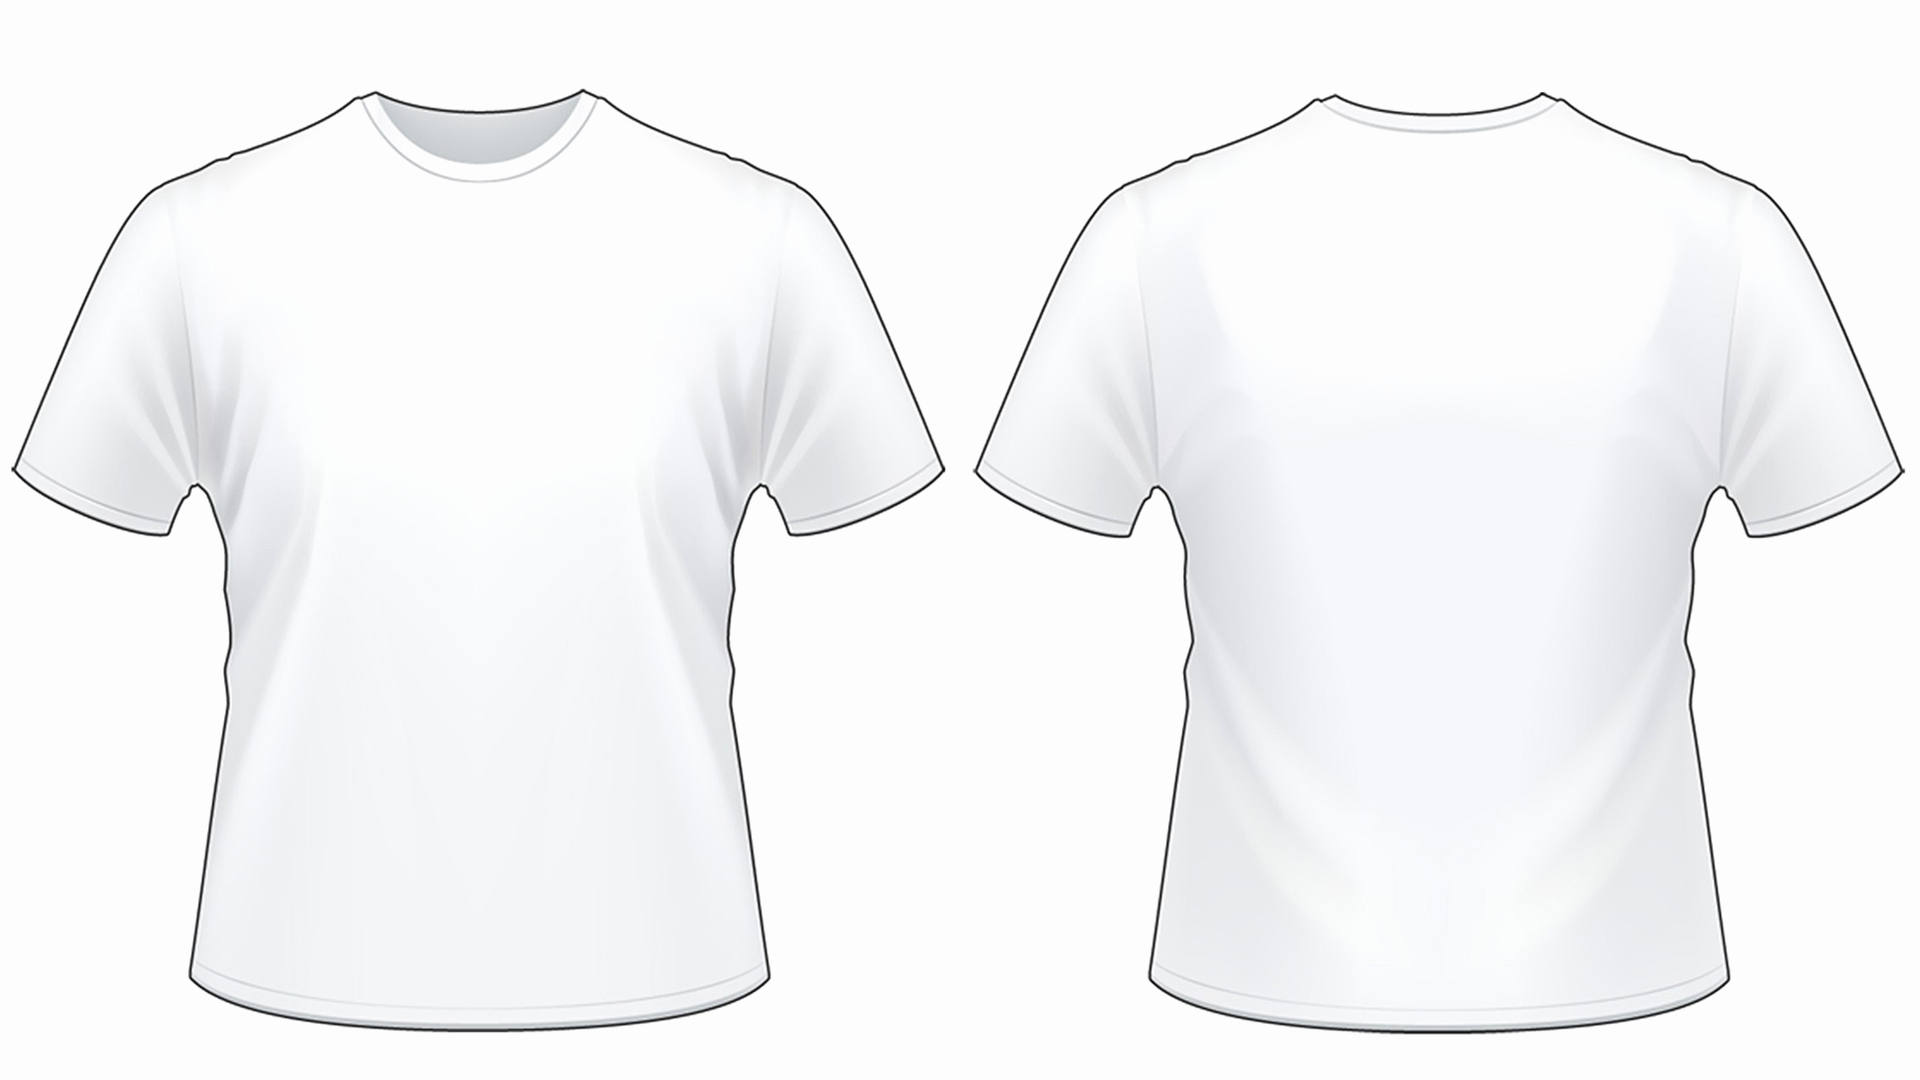 T Shirt Template for Photoshop Unique Blank Tshirt Template Worksheet In Png Hd Wallpapers